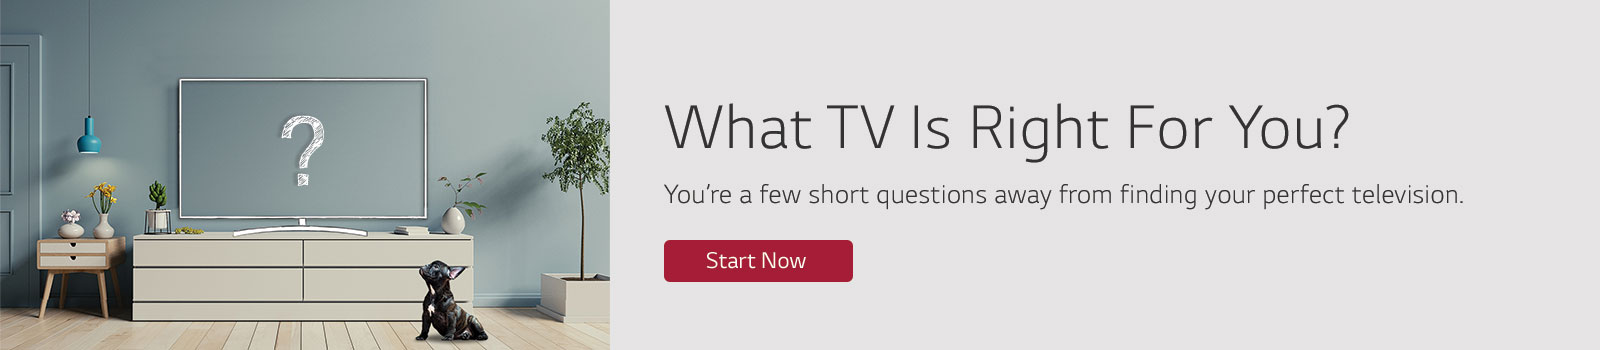 What TV Is Right for You?